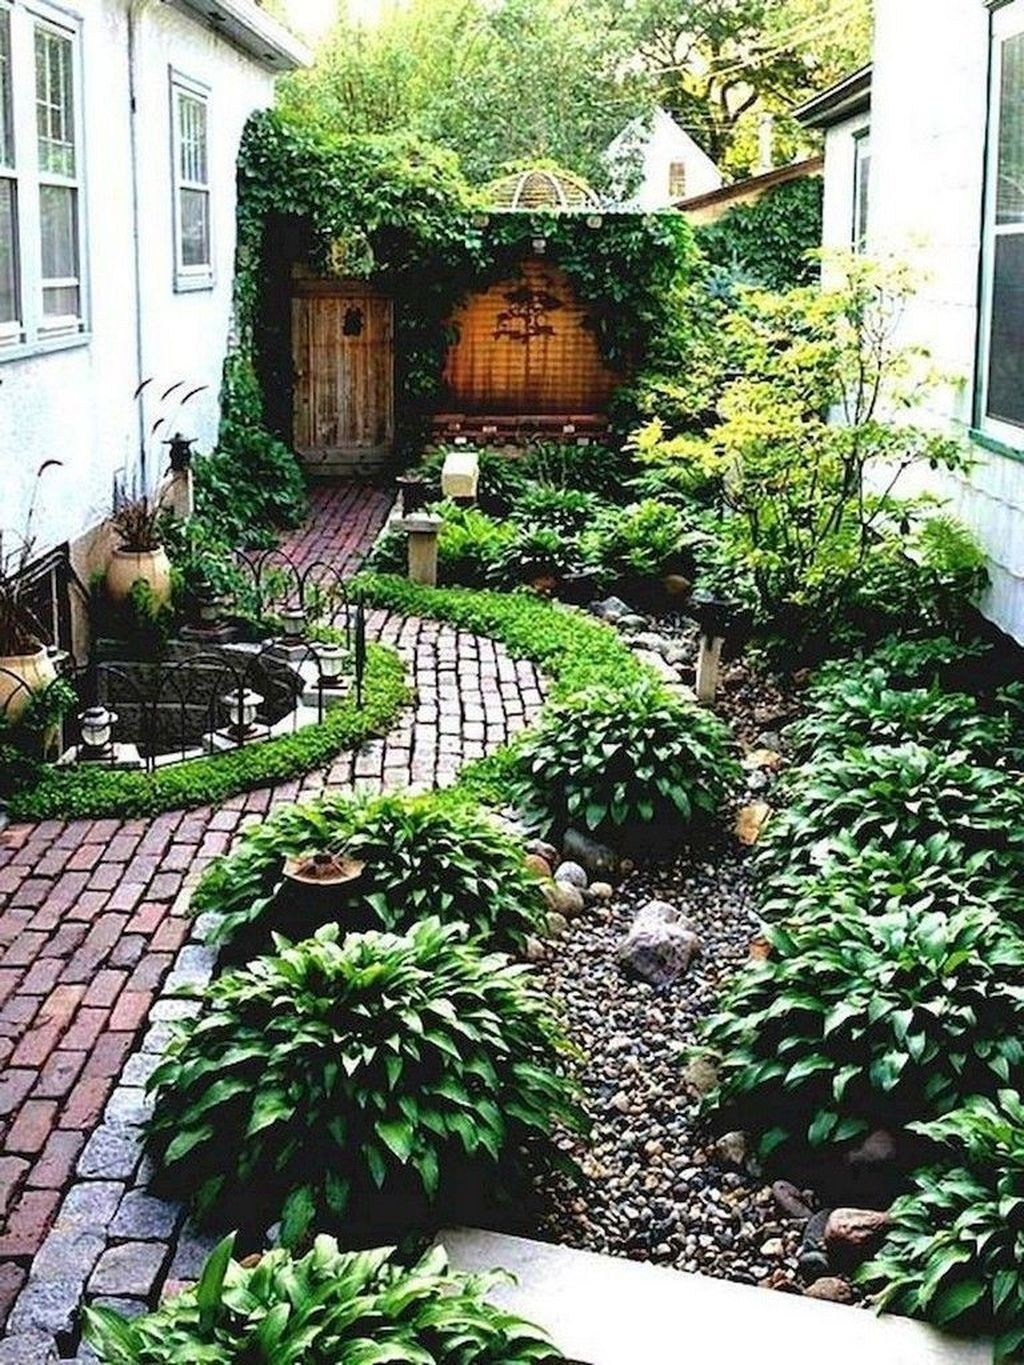 20+ Cute Front Yard Landscaping Design Ideas | Small ... on Cute Small Backyard Ideas  id=63942